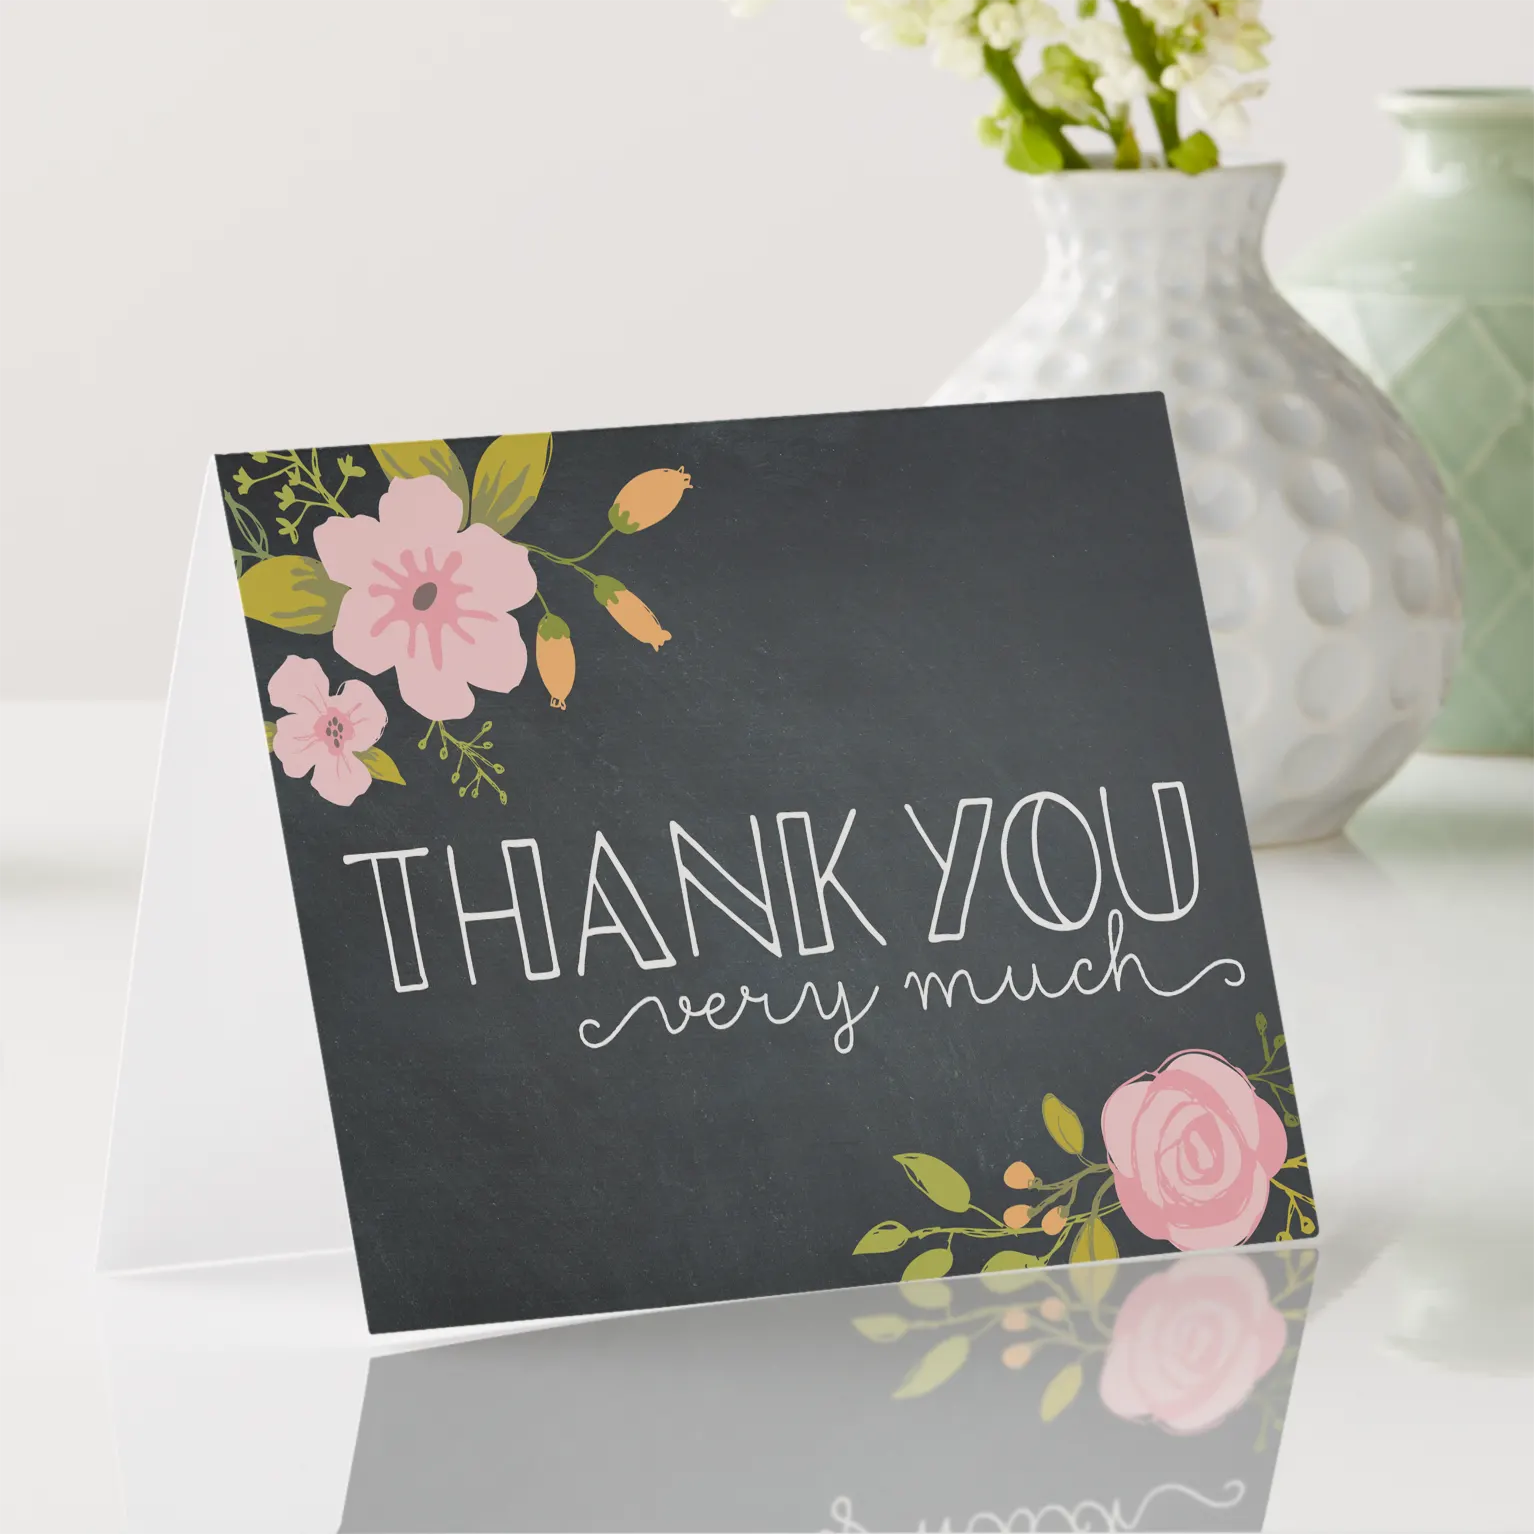 A thank you card - gifts for mentor